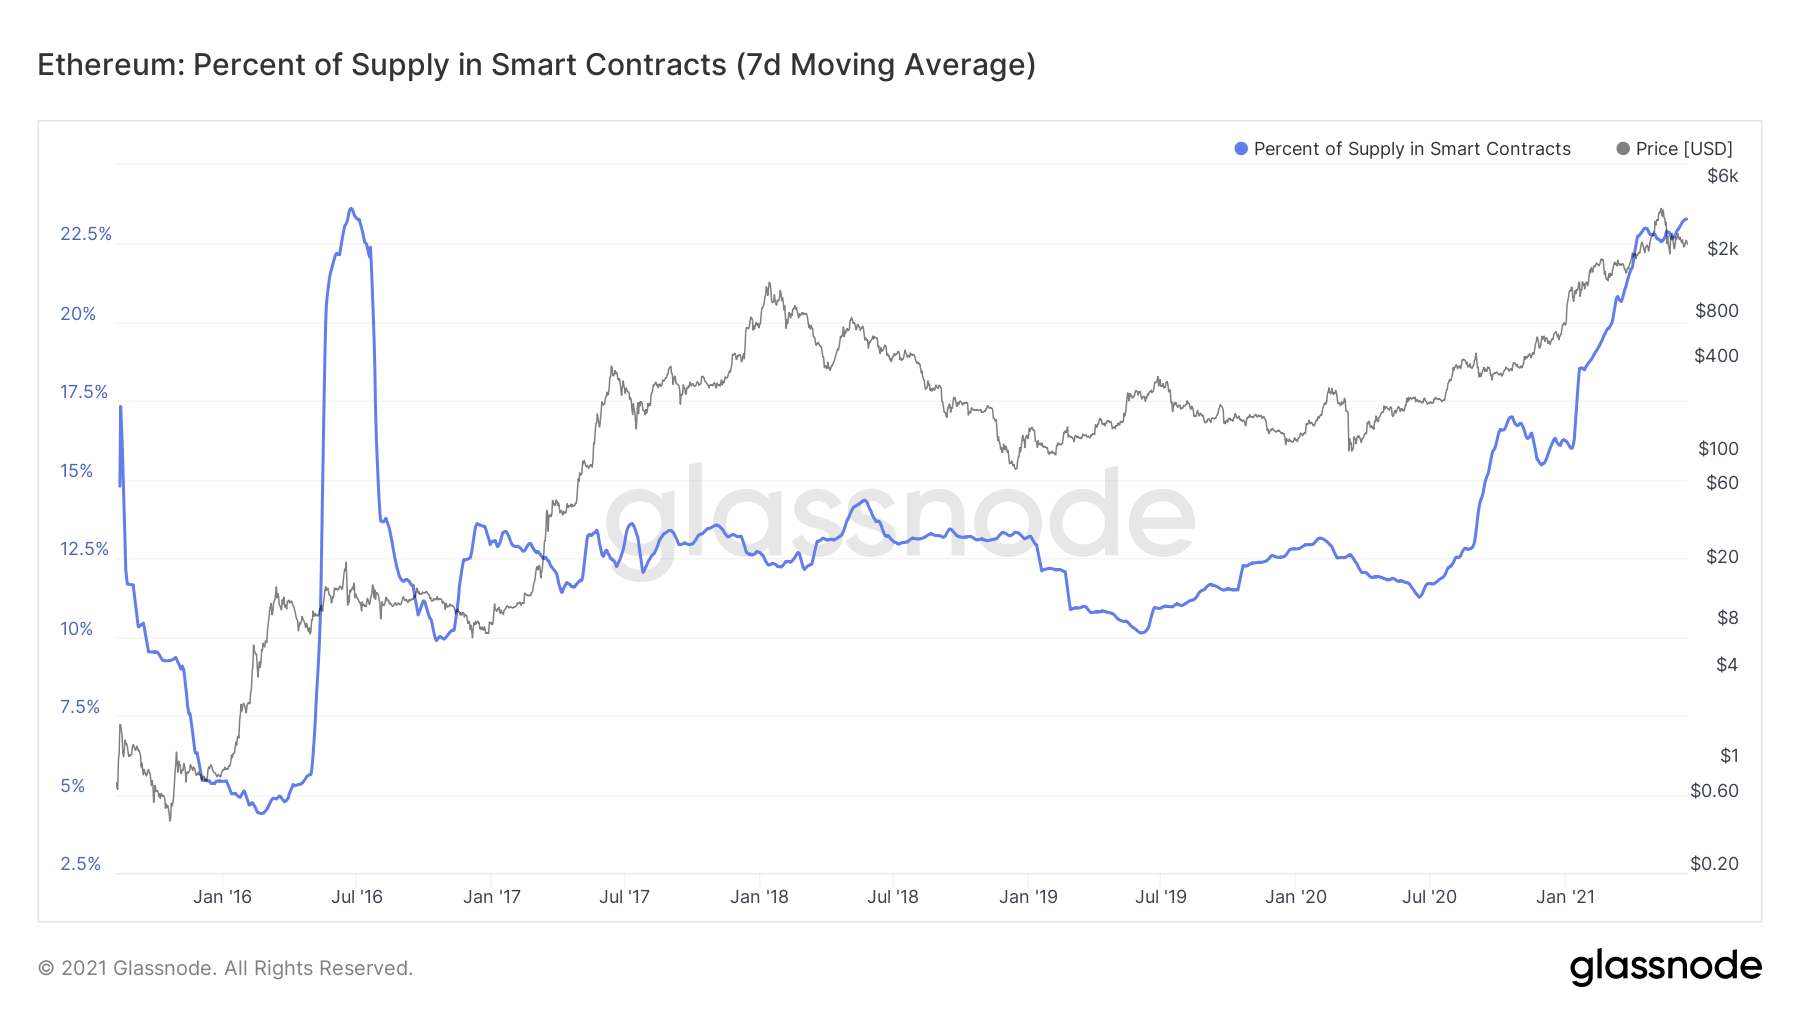 Smart Contract Supply ETH